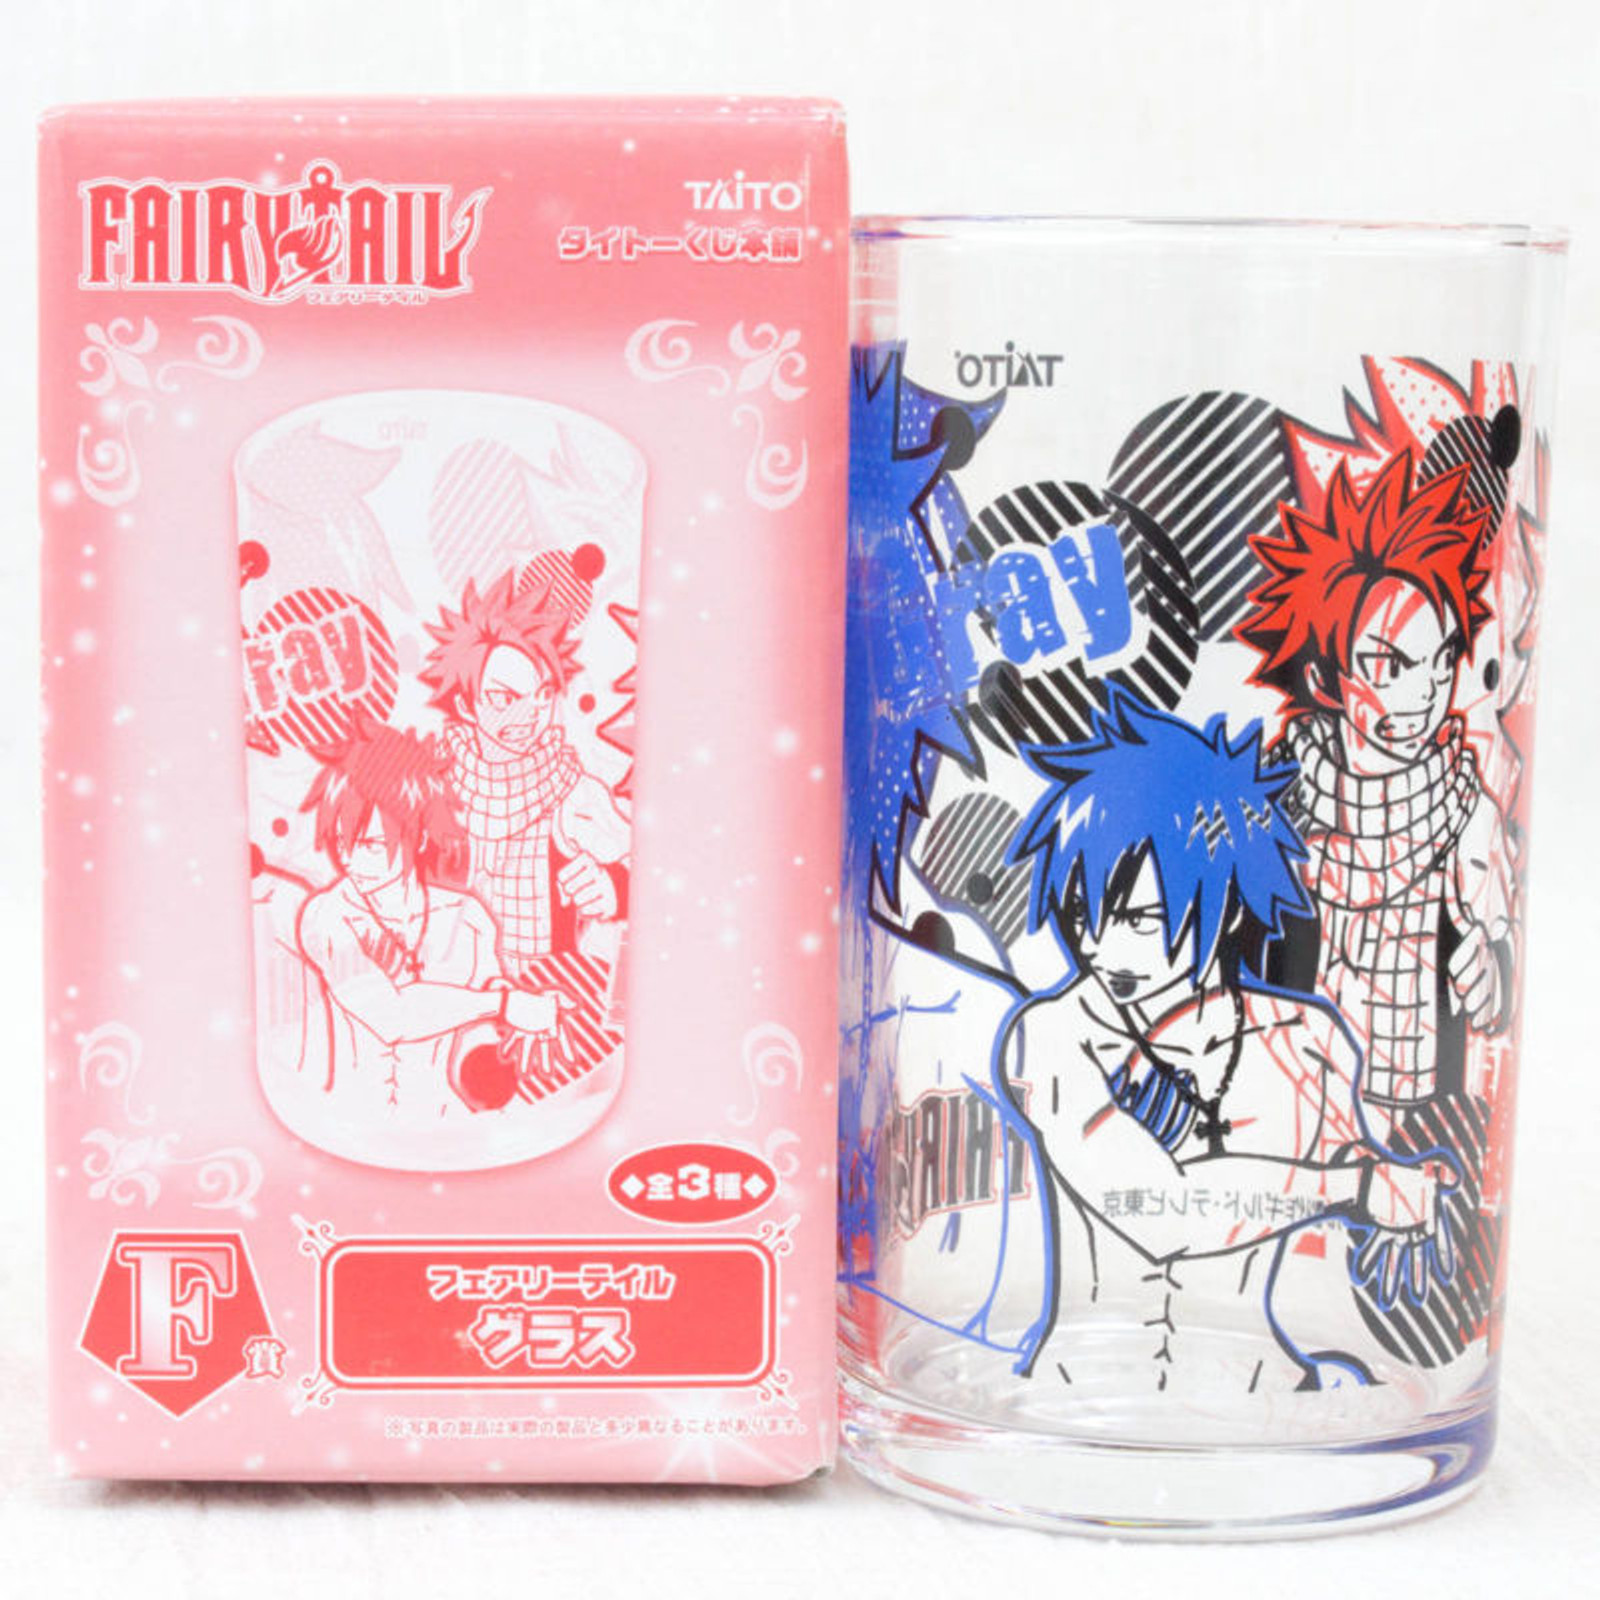 FAIRYTAIL Natsu Gray Visual Art Glass Banpresto JAPAN ANIME MANGA